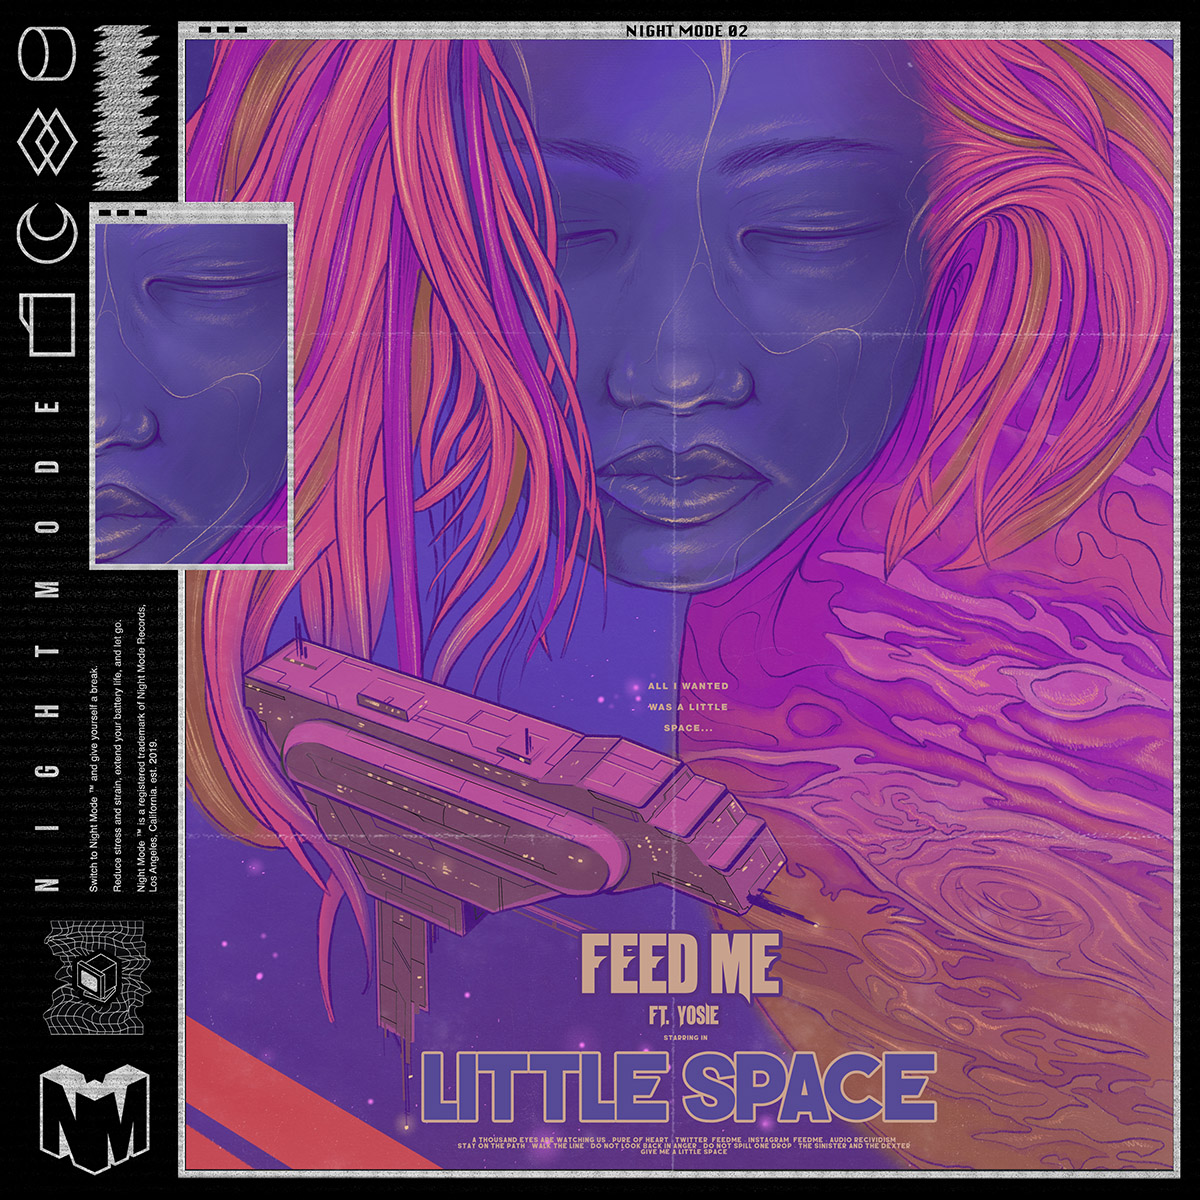 Feed Me - Little Space